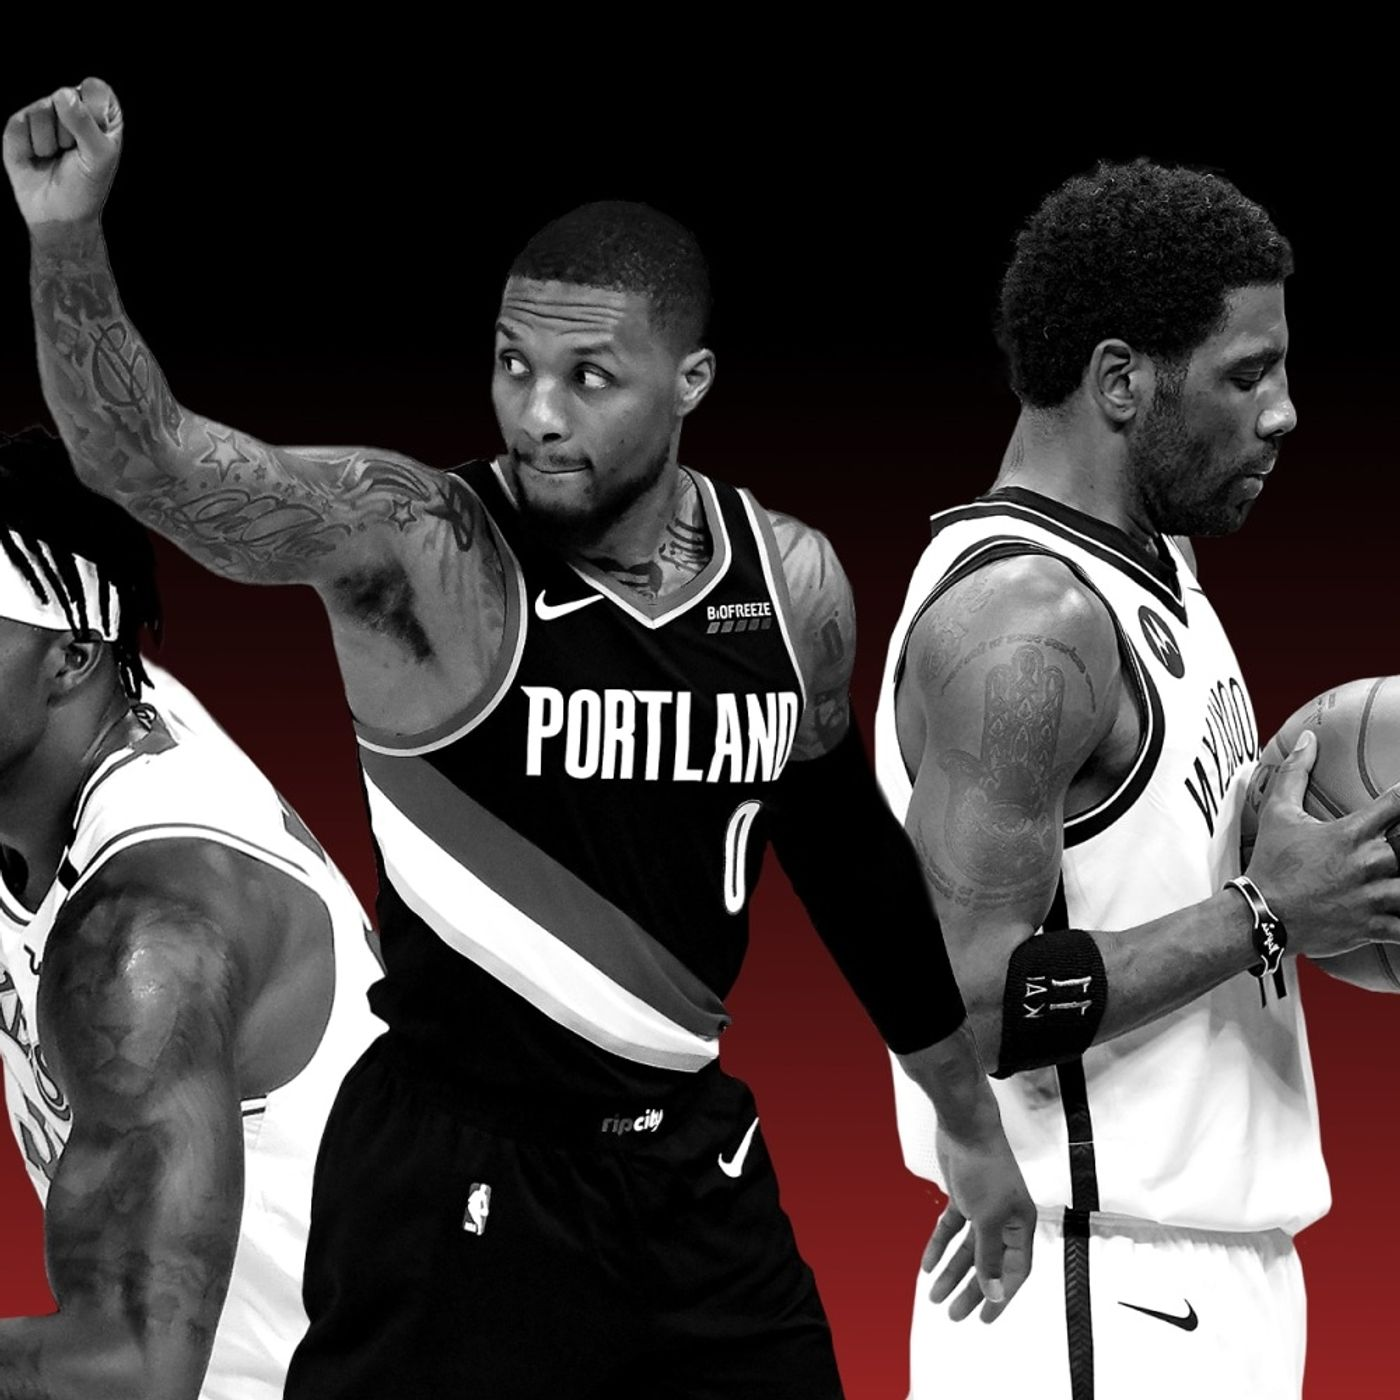 """""""NBA Players' Support For Palestine Signals New Era In Sports Activism""""—Nate Wallace"""